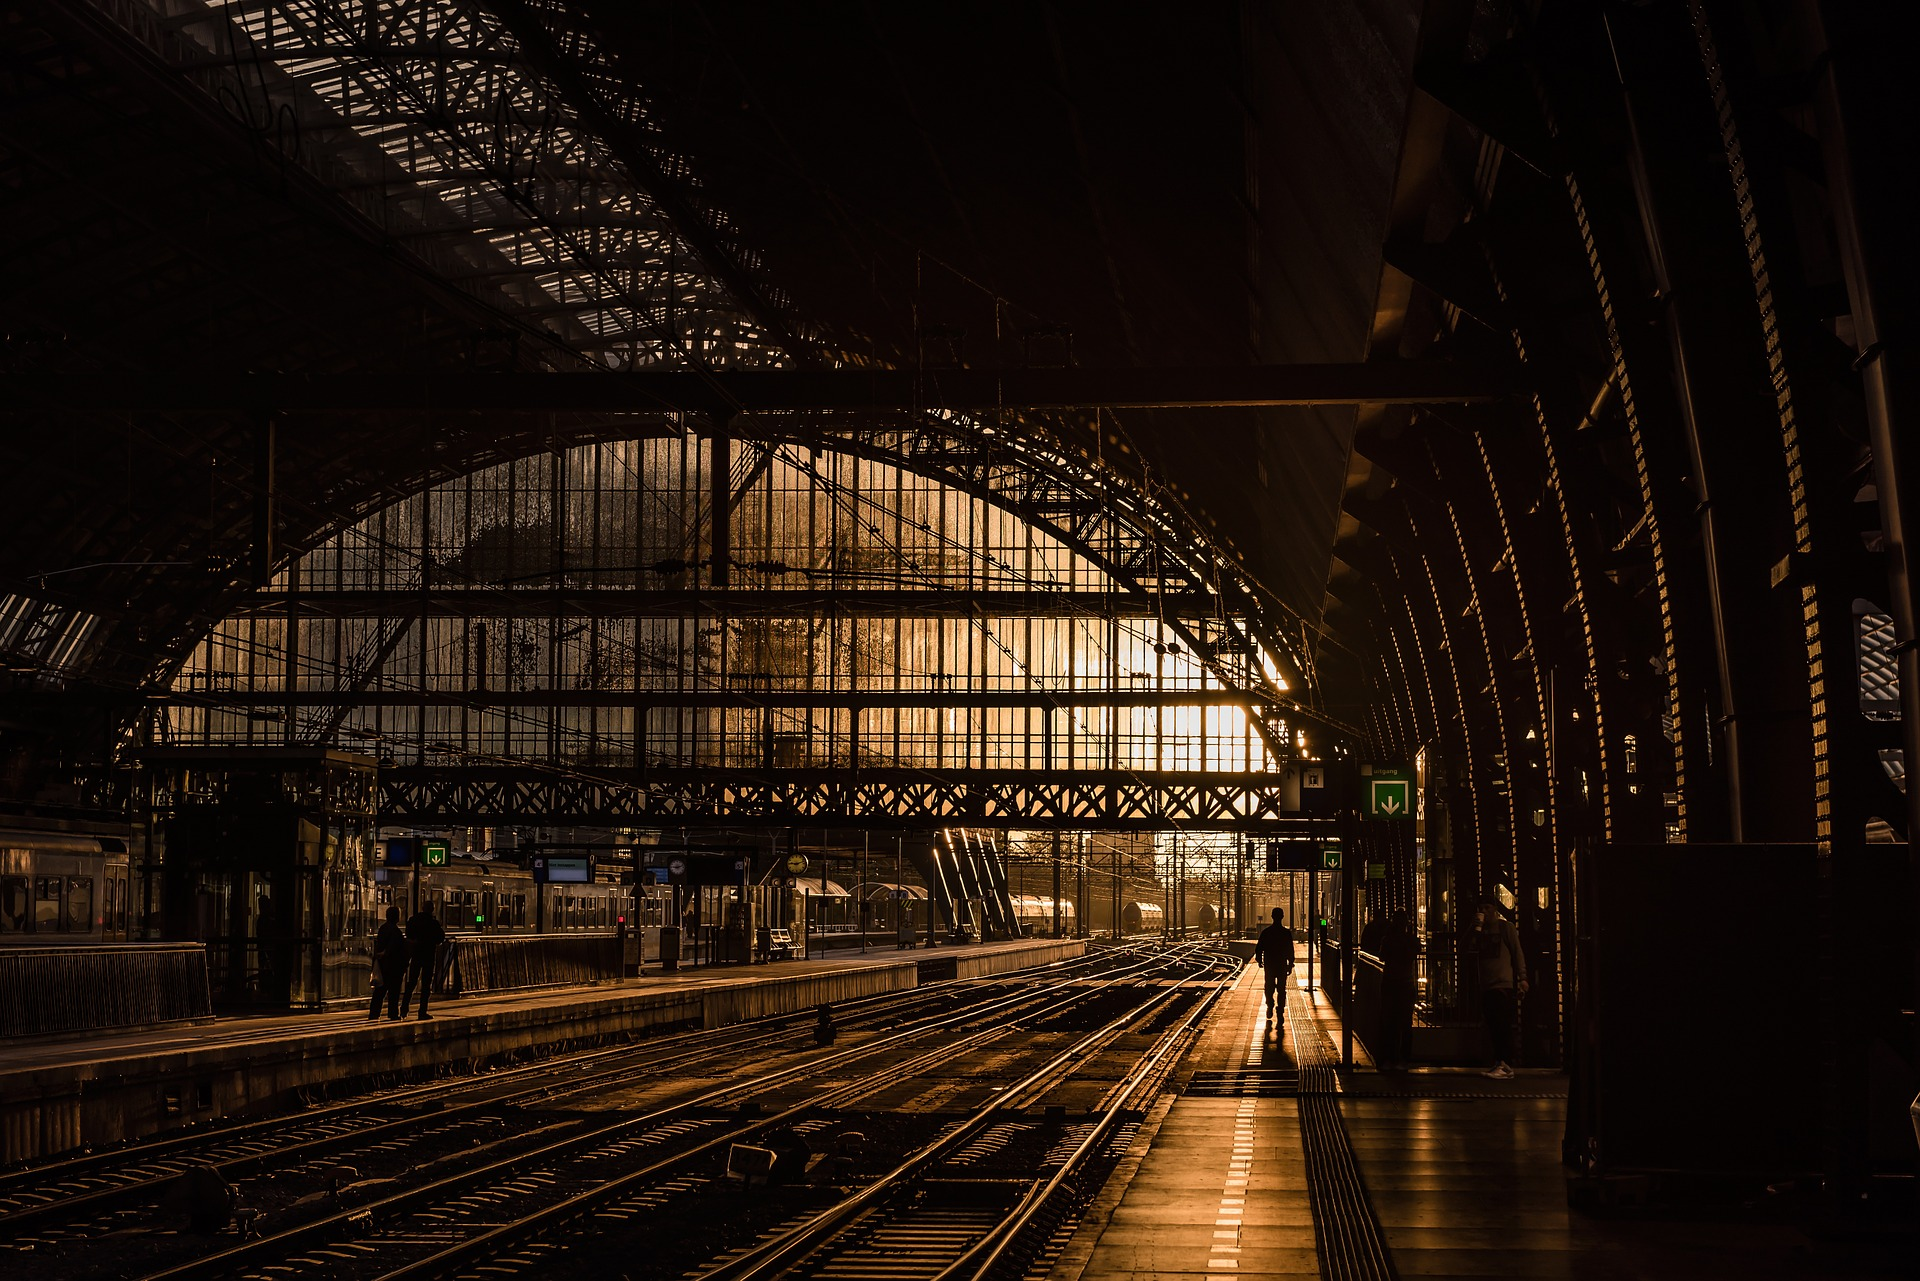 Image of train station in Europe